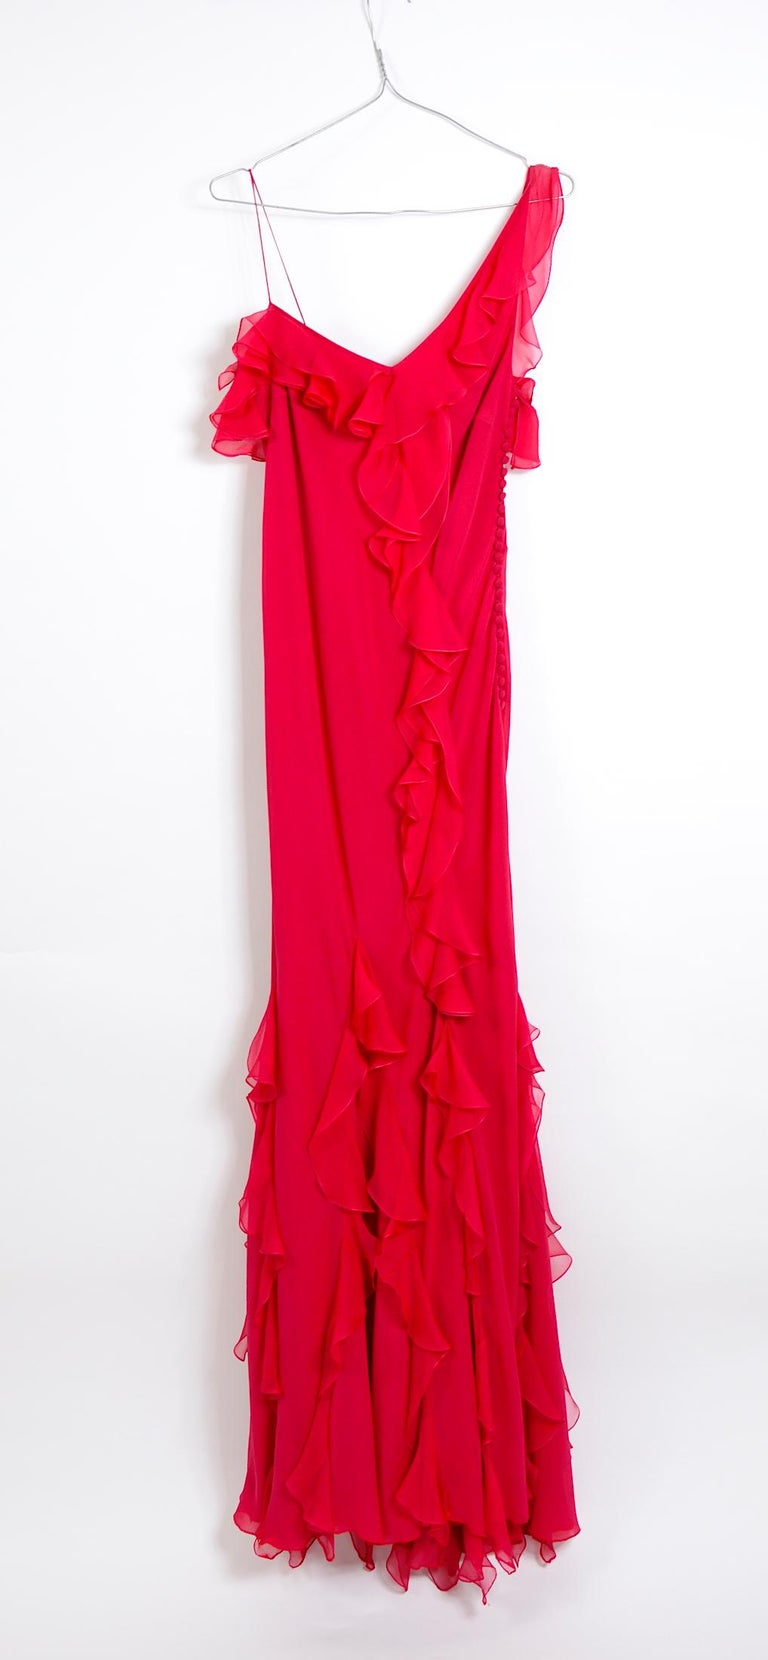 John Galliano 1990s vintage red silk bias cut ruffle dress For Sale 1